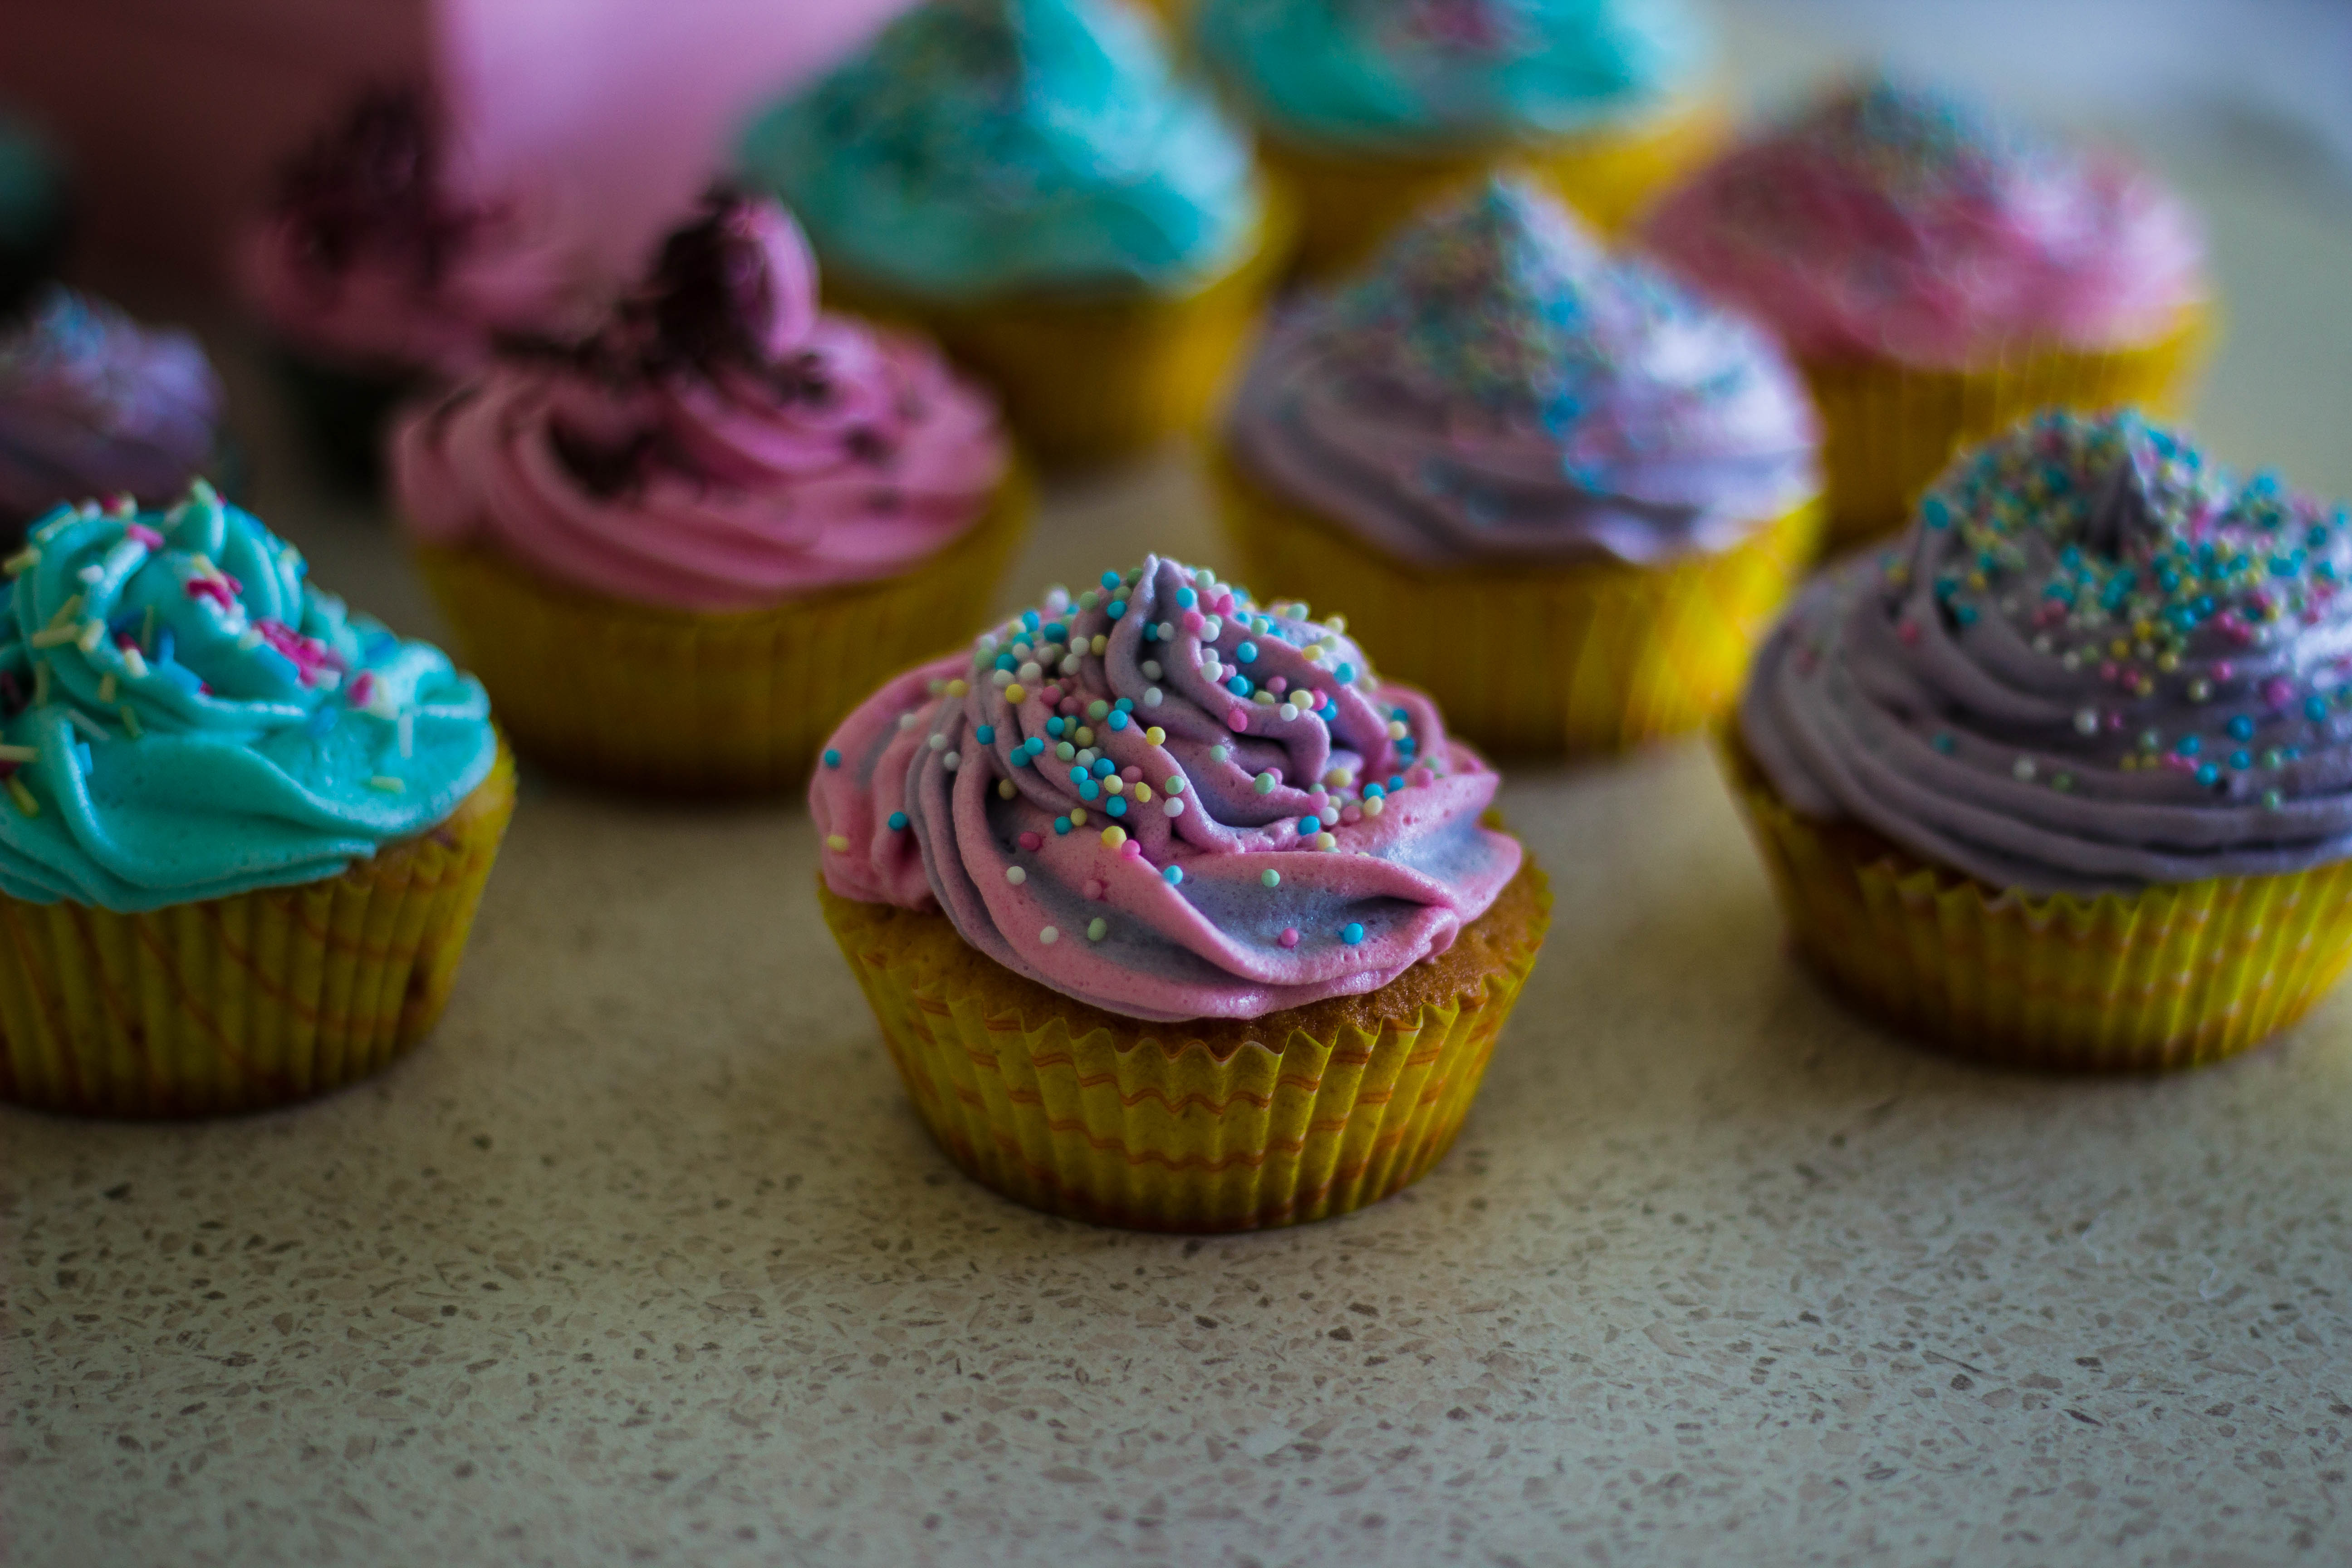 Free Stock Photo Of Baked Goods Colorful Colourful